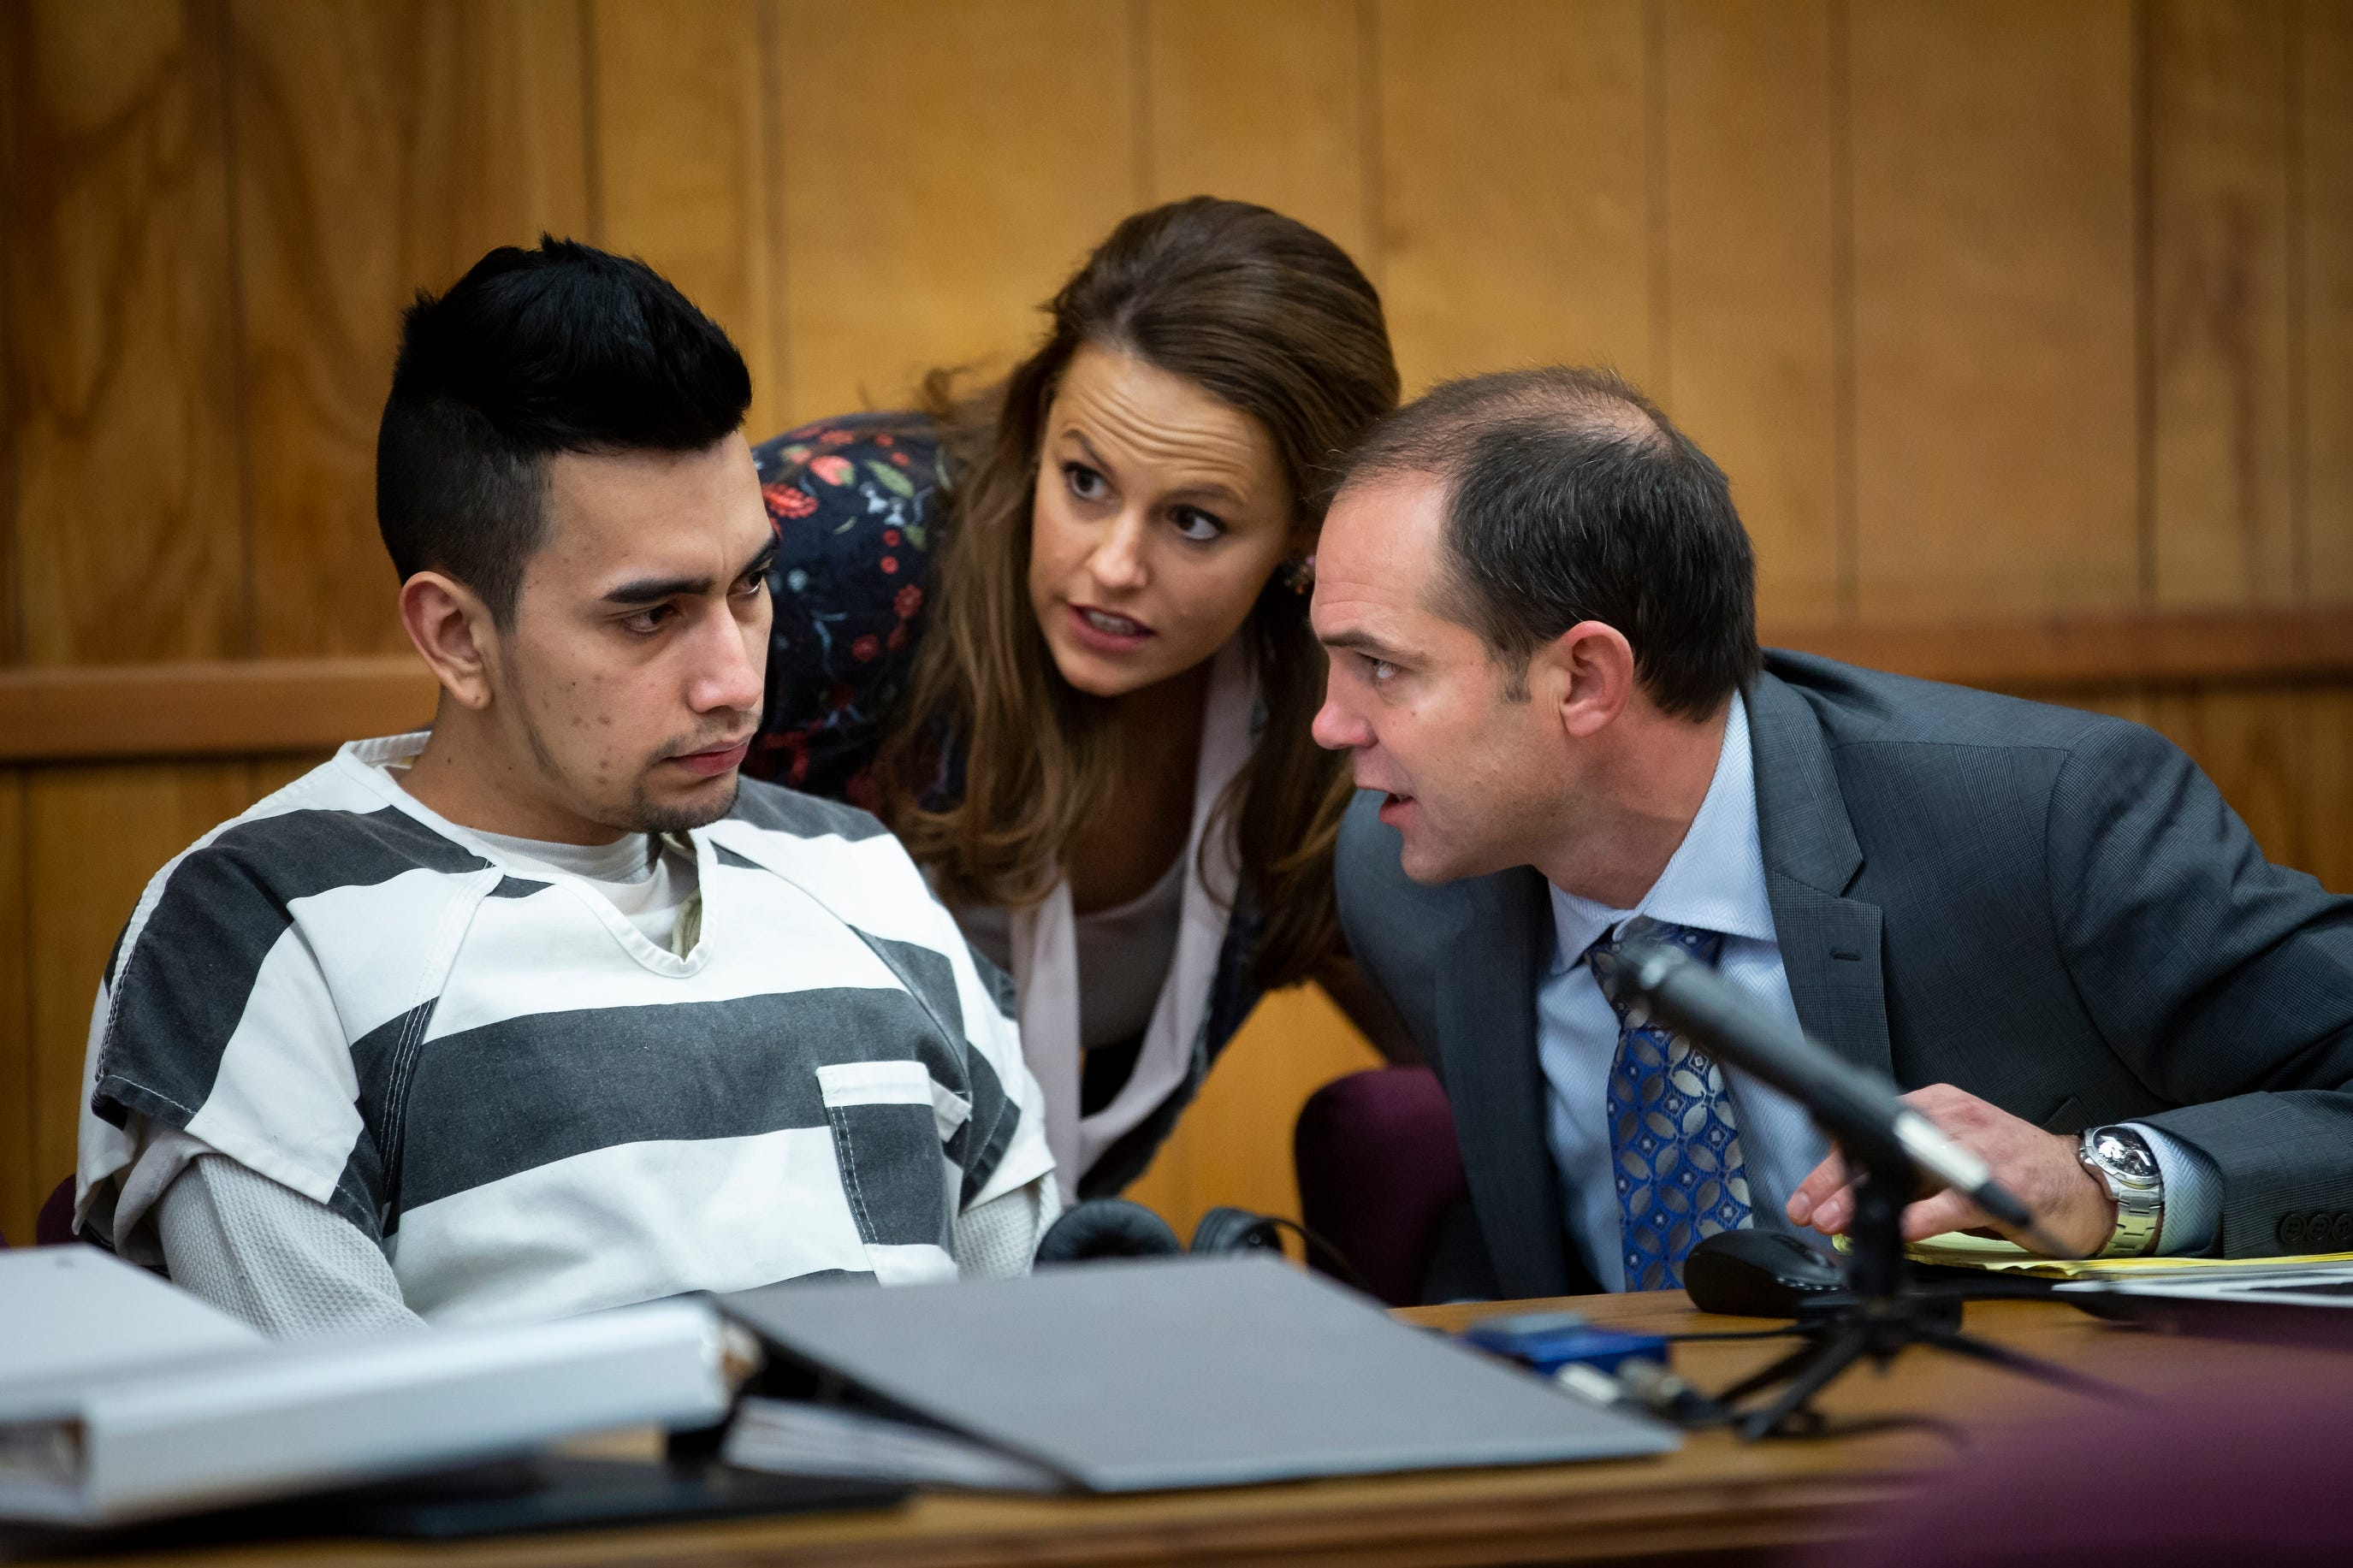 You don t want to try this case twice : The trial of Cristhian Bahena Rivera, accused of killing Mollie Tibbetts, to begin